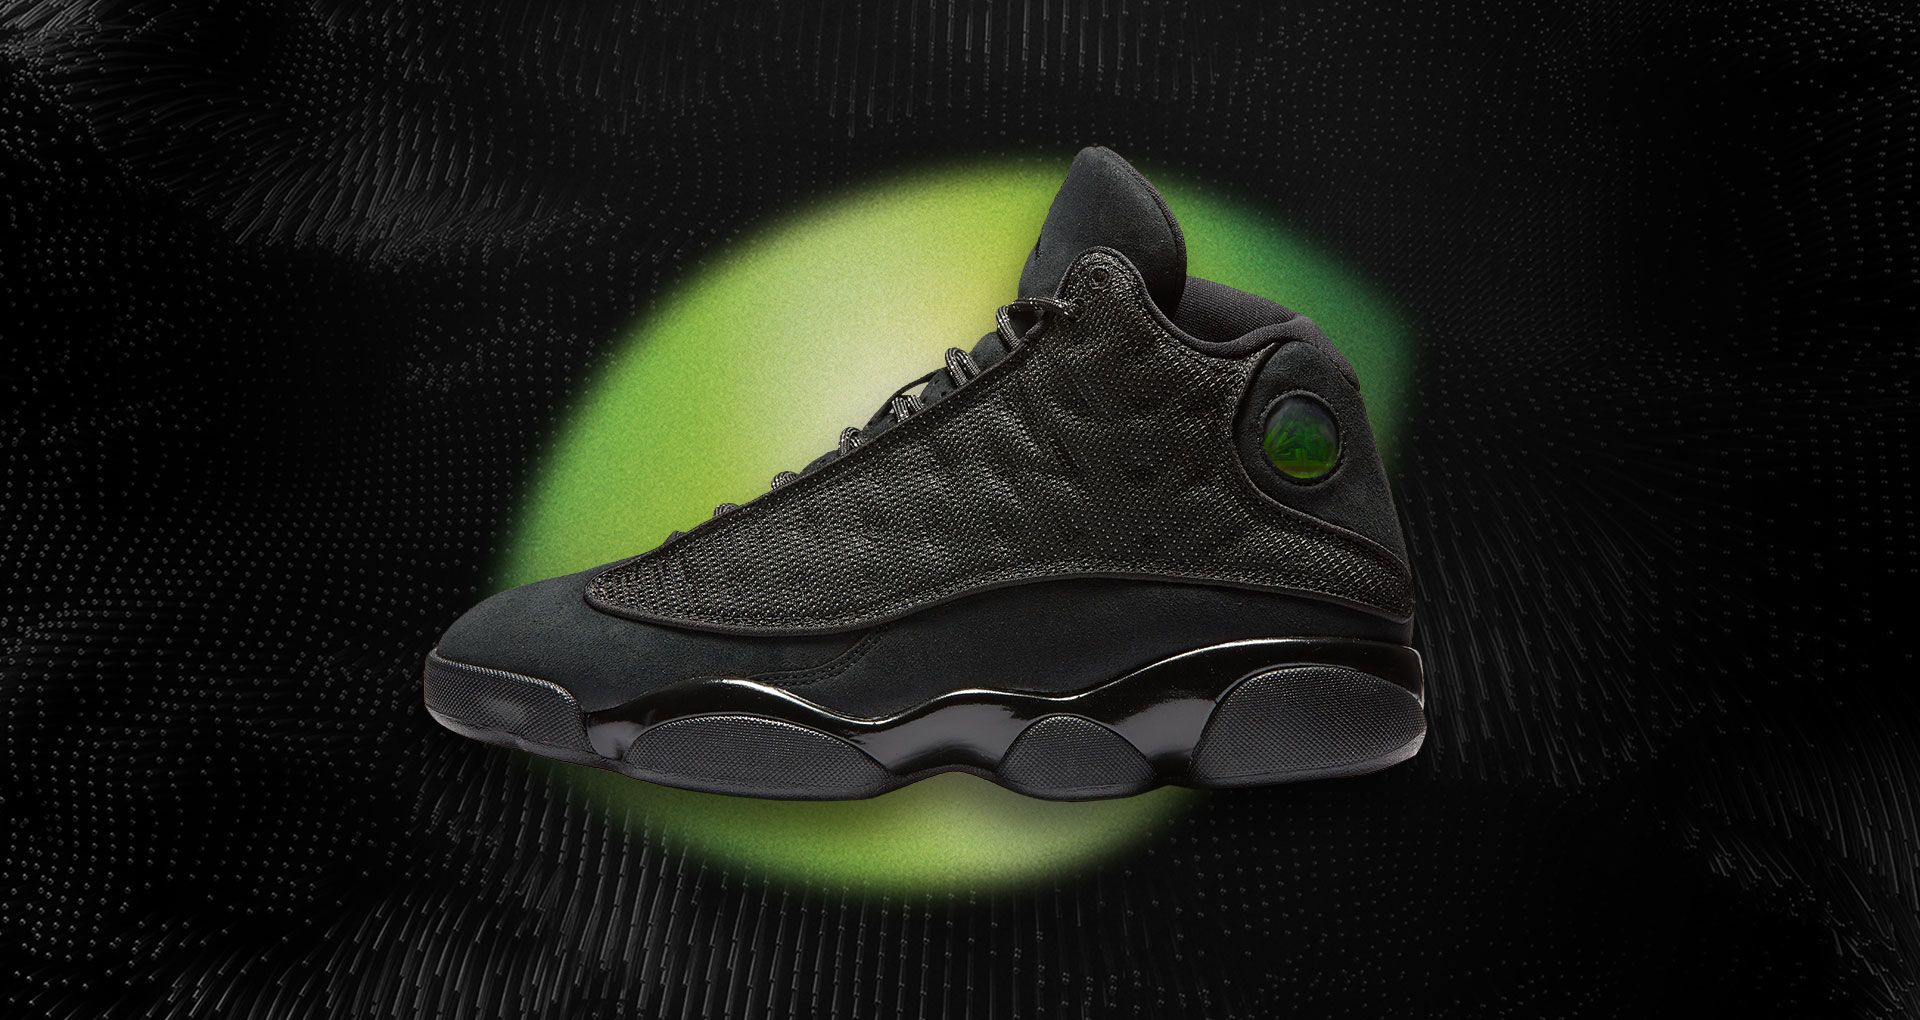 331d66d6b44 Air Jordan 13 Retro  Black Cat . Nike⁠+ SNKRS